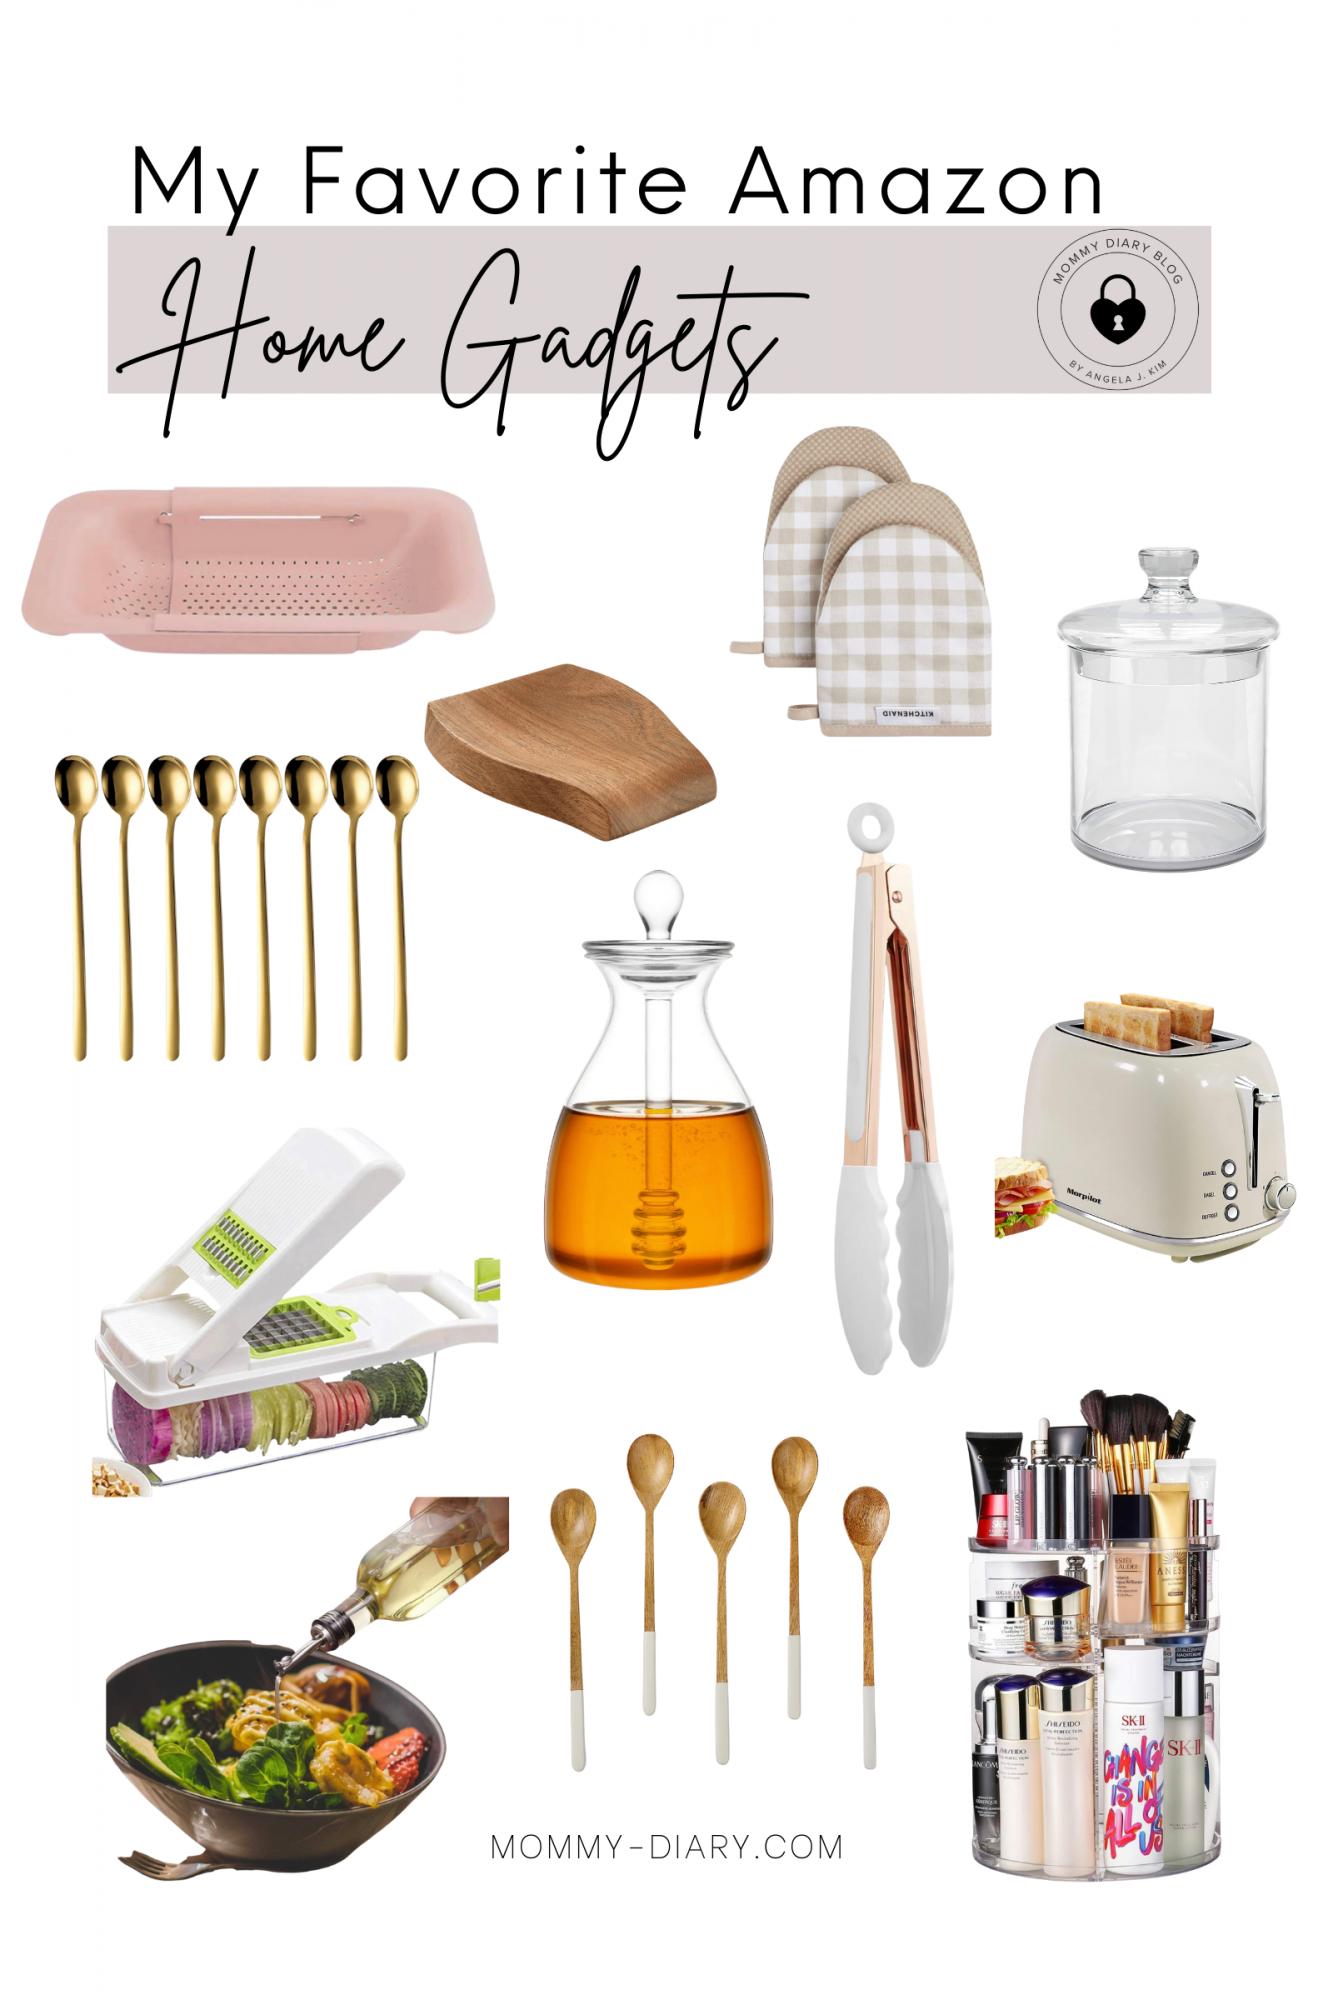 My Favorite Amazon Home Kitchen Gadgets on Mommy Diary Blog.